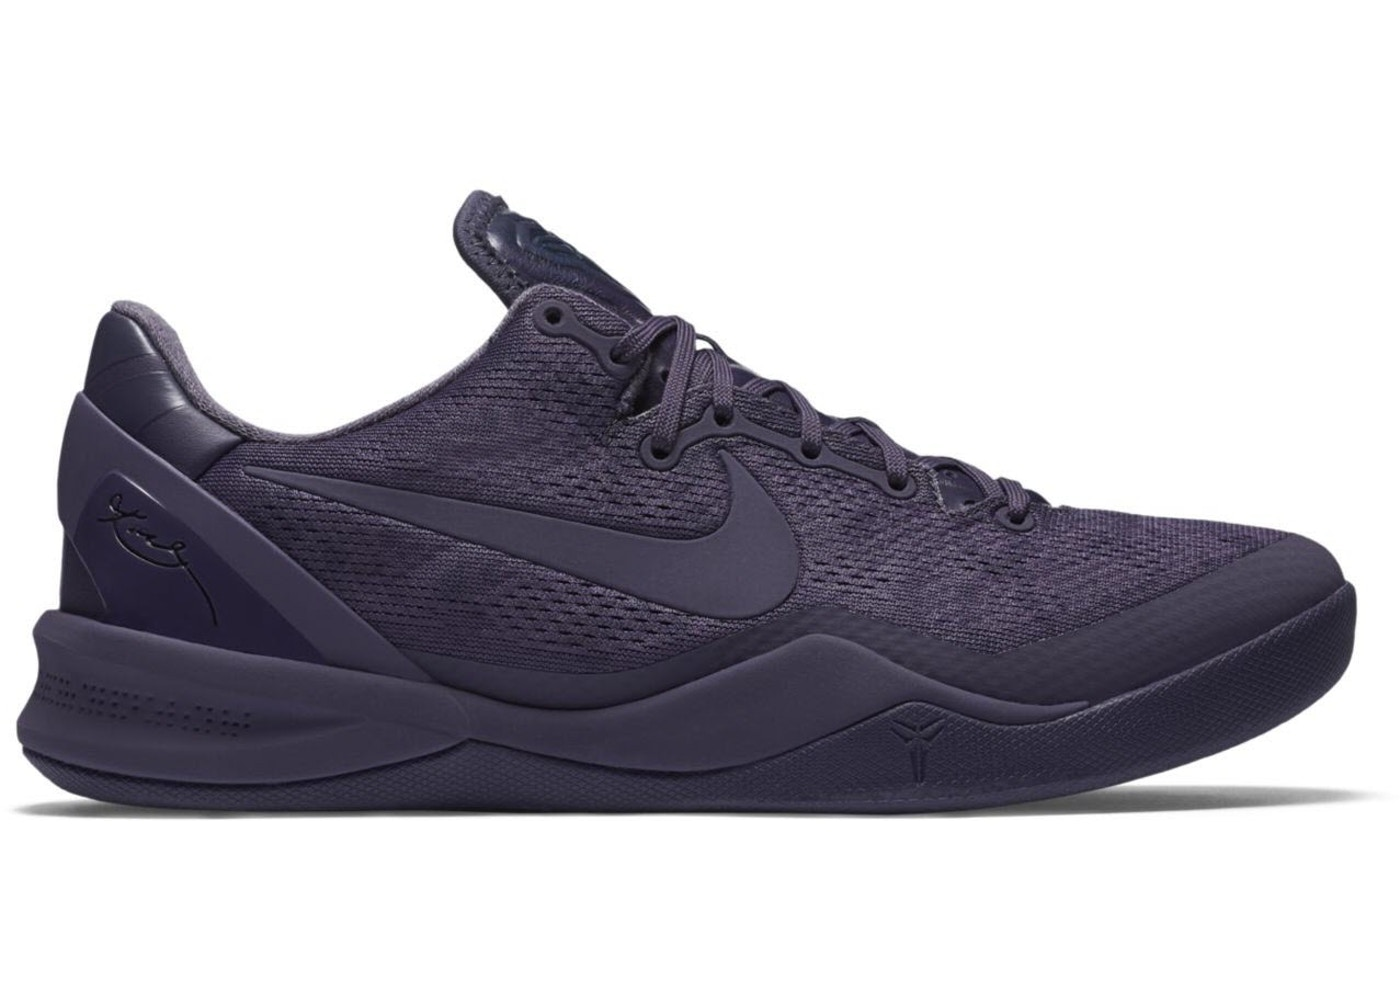 5b8593c69a27 Kobe 8 Black Mamba Collection Fade to Black  PM9398 Unique New Products  Shoes Nike Kobe 8 Purple ...